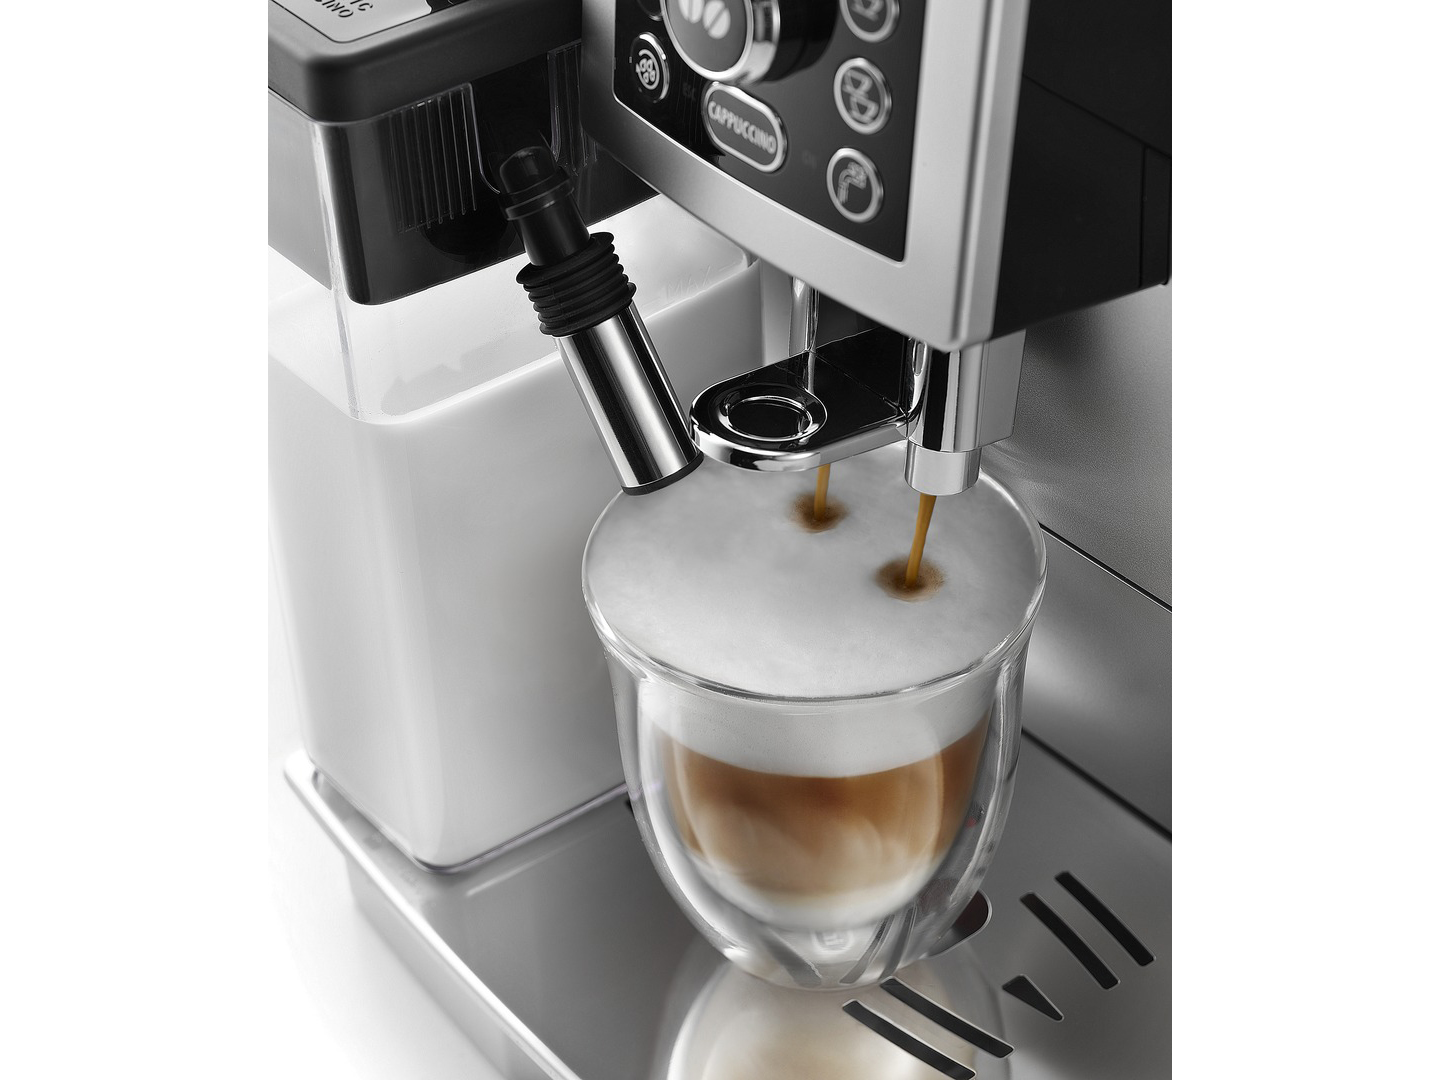 Kenwood_(Delonghi) 303675451 ECAM 23.4606 buy delonghi ecam23 460 bean to cup coffee machine silver  at edmiracle.co